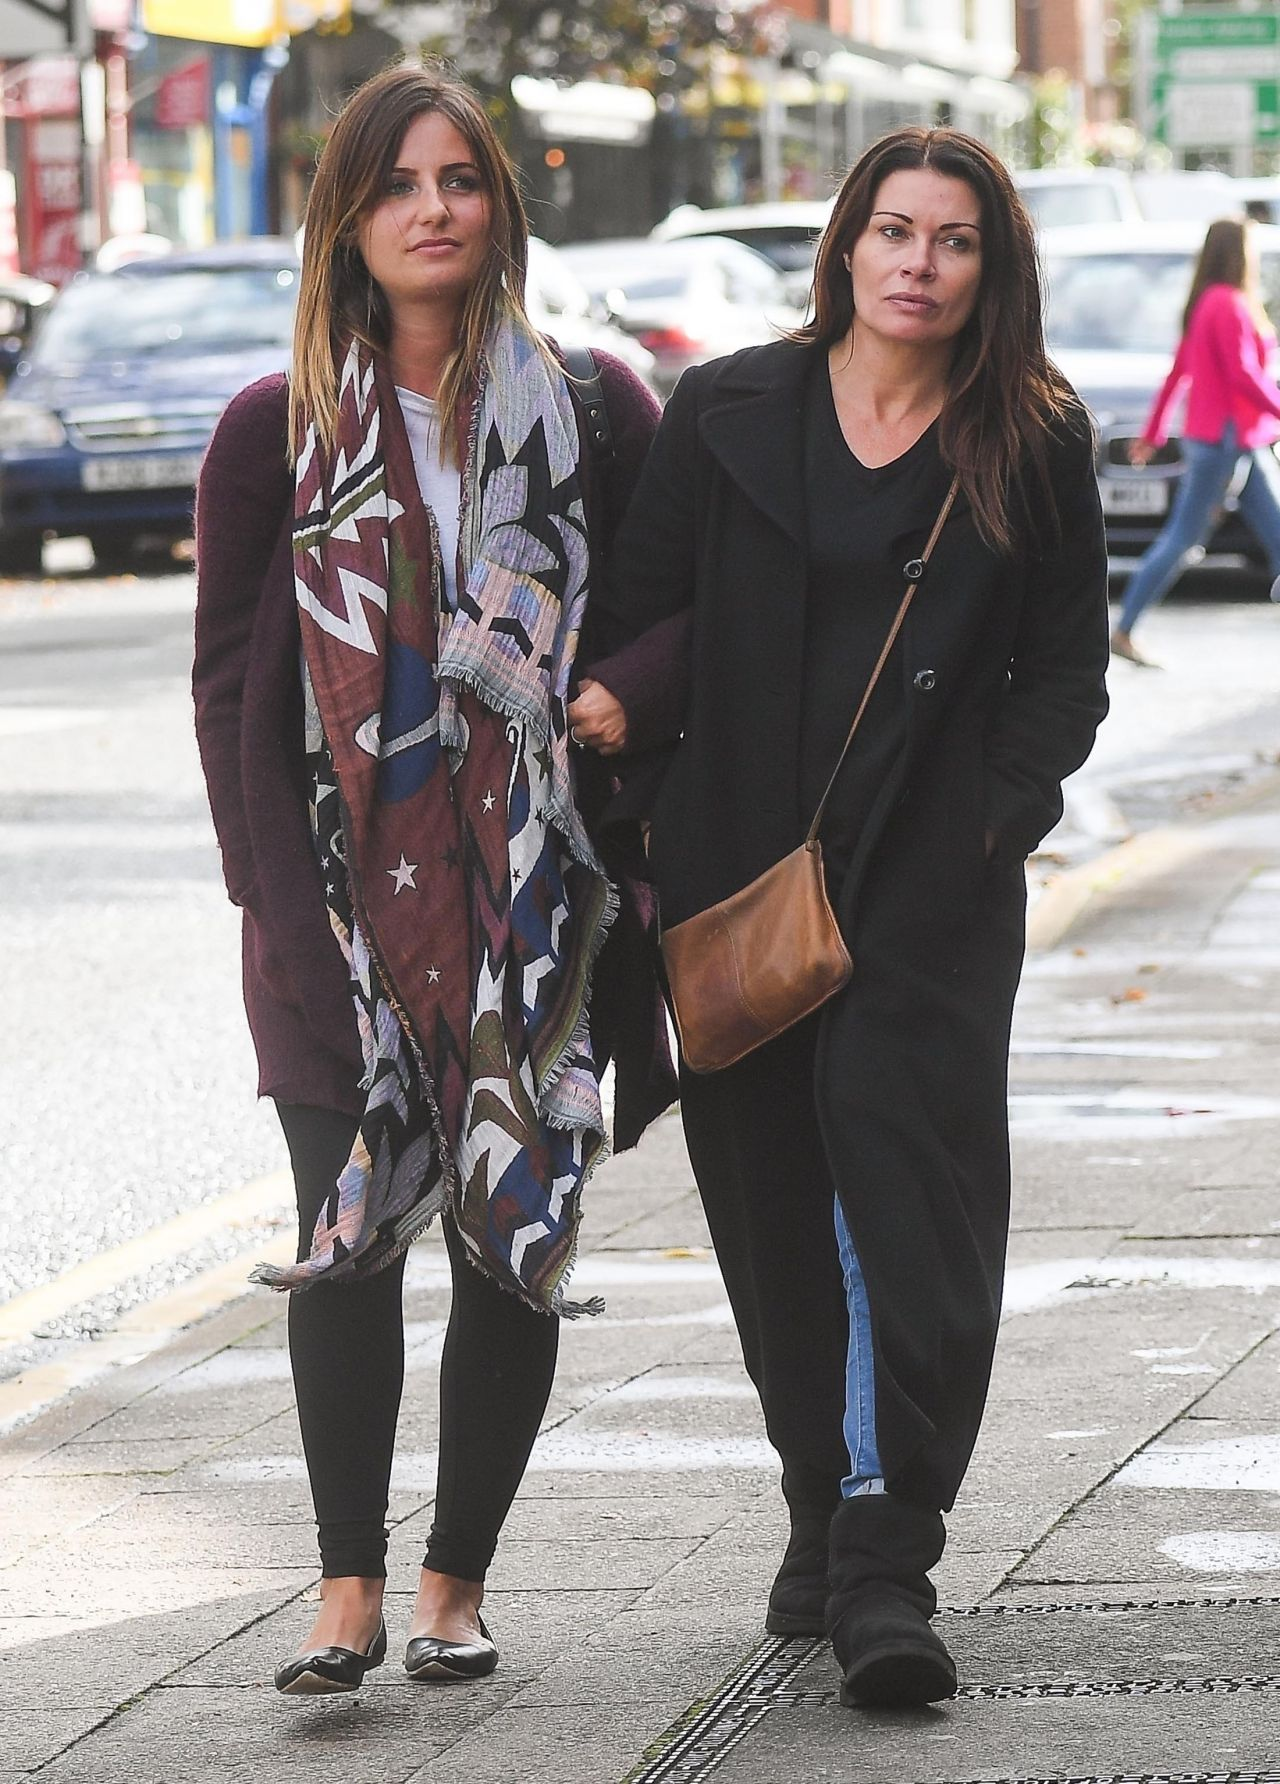 Alison king out with a female friend in alderley edge cheshire